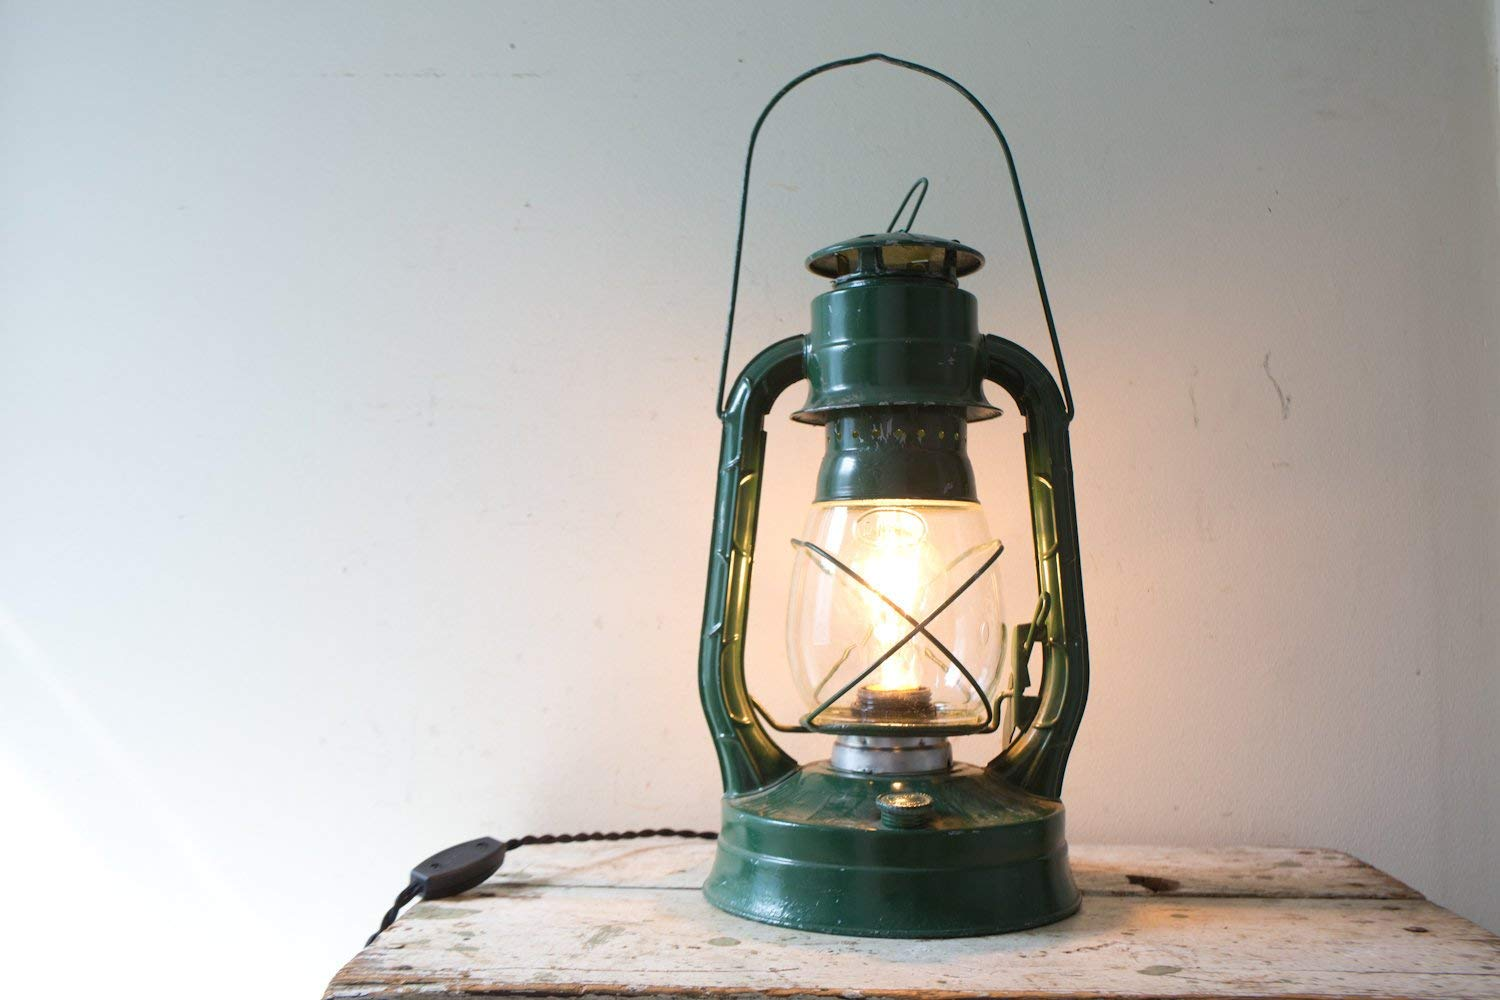 Modern Kerosene Lamp Cheap Electric Kerosene Lamp Find Electric Kerosene Lamp Deals On